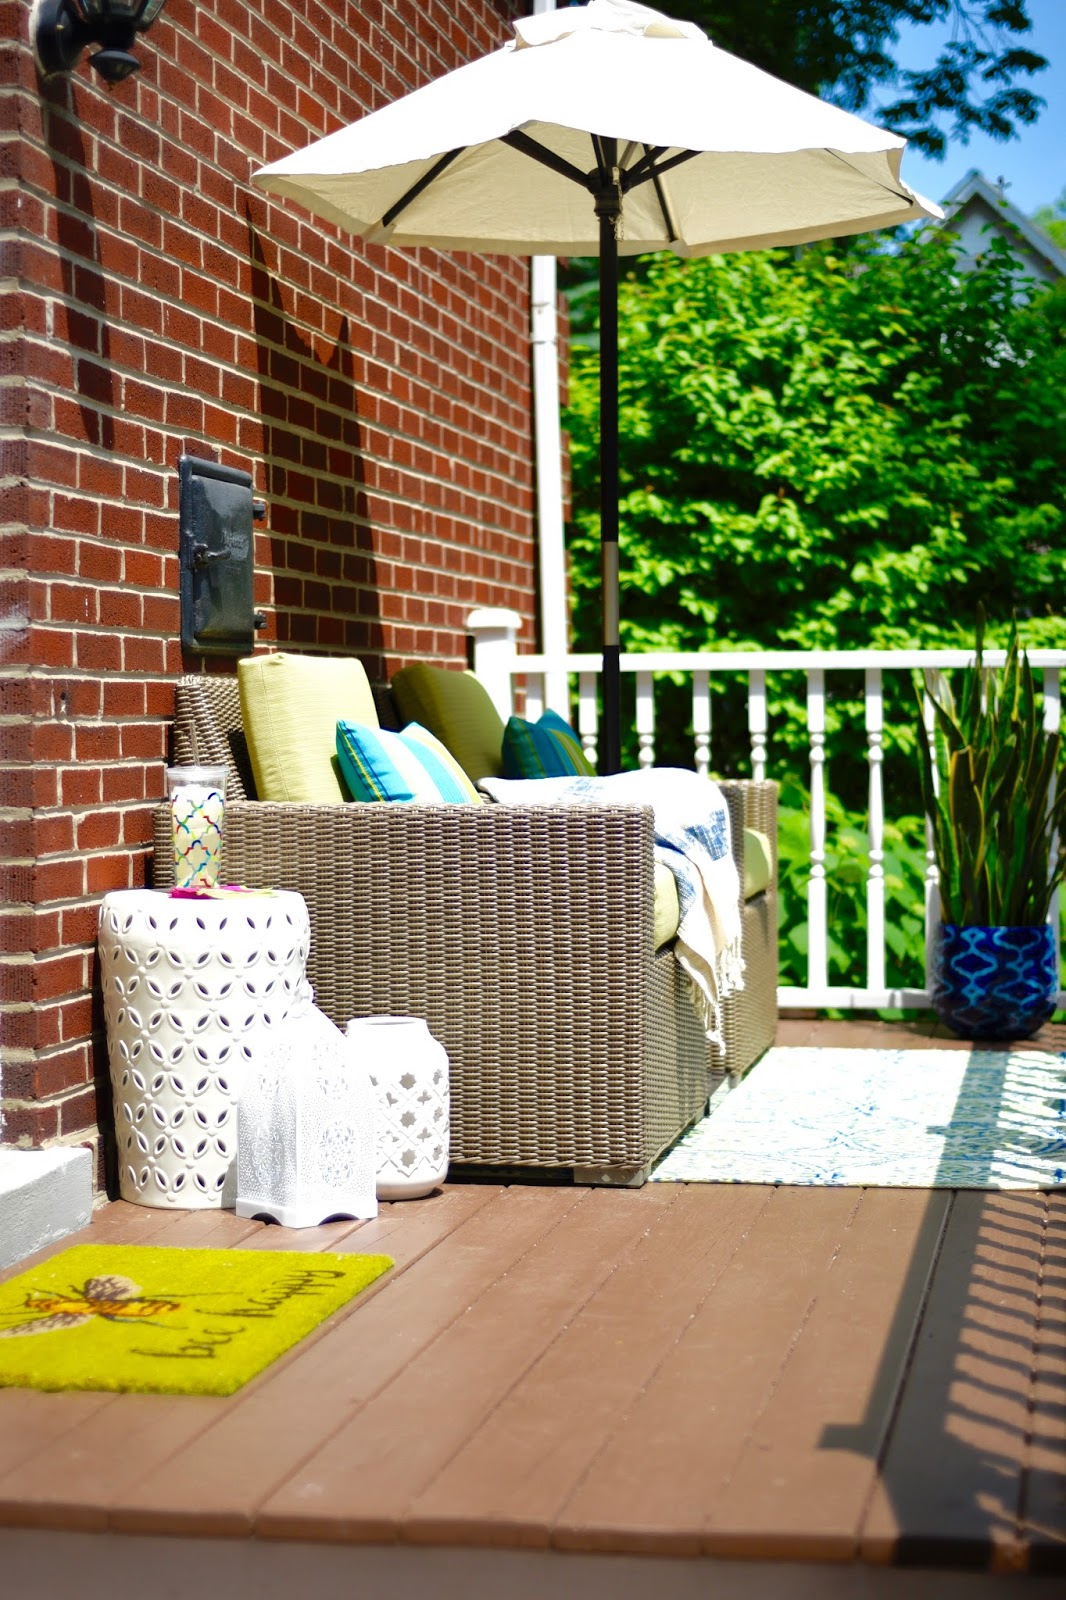 Outdoor Furniture Sale Memorial Weekend To Decorate The Patio, Deck Or  Backyard All Styles On